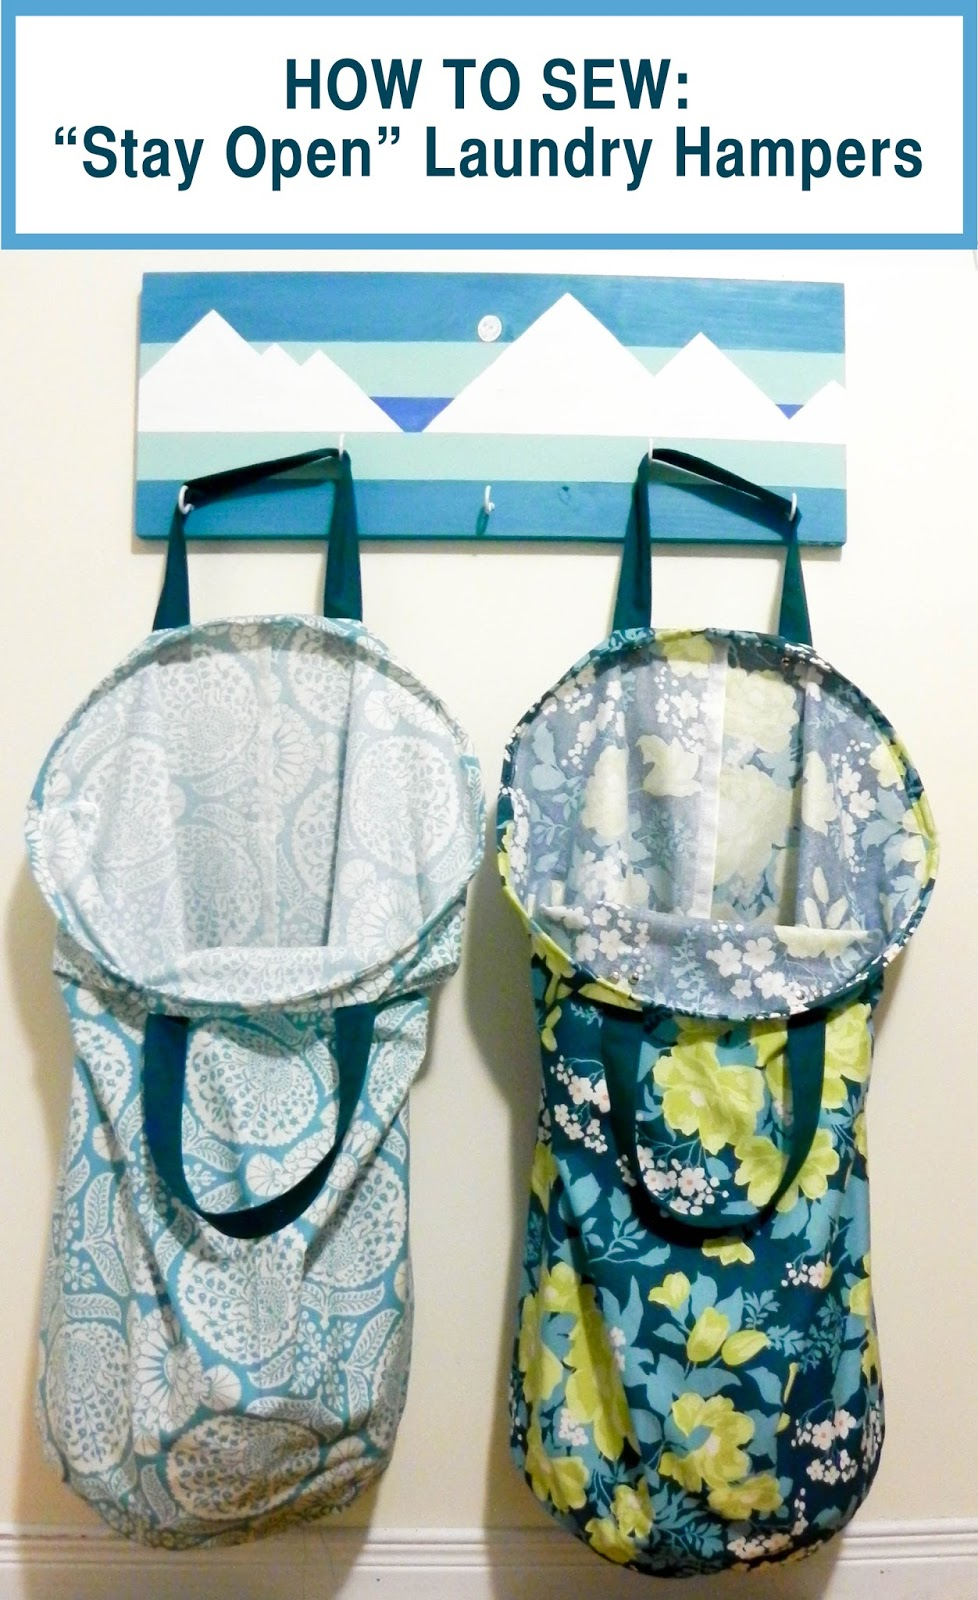 Emmaline Bags: Sewing Patterns and Purse Supplies: How to Make ...